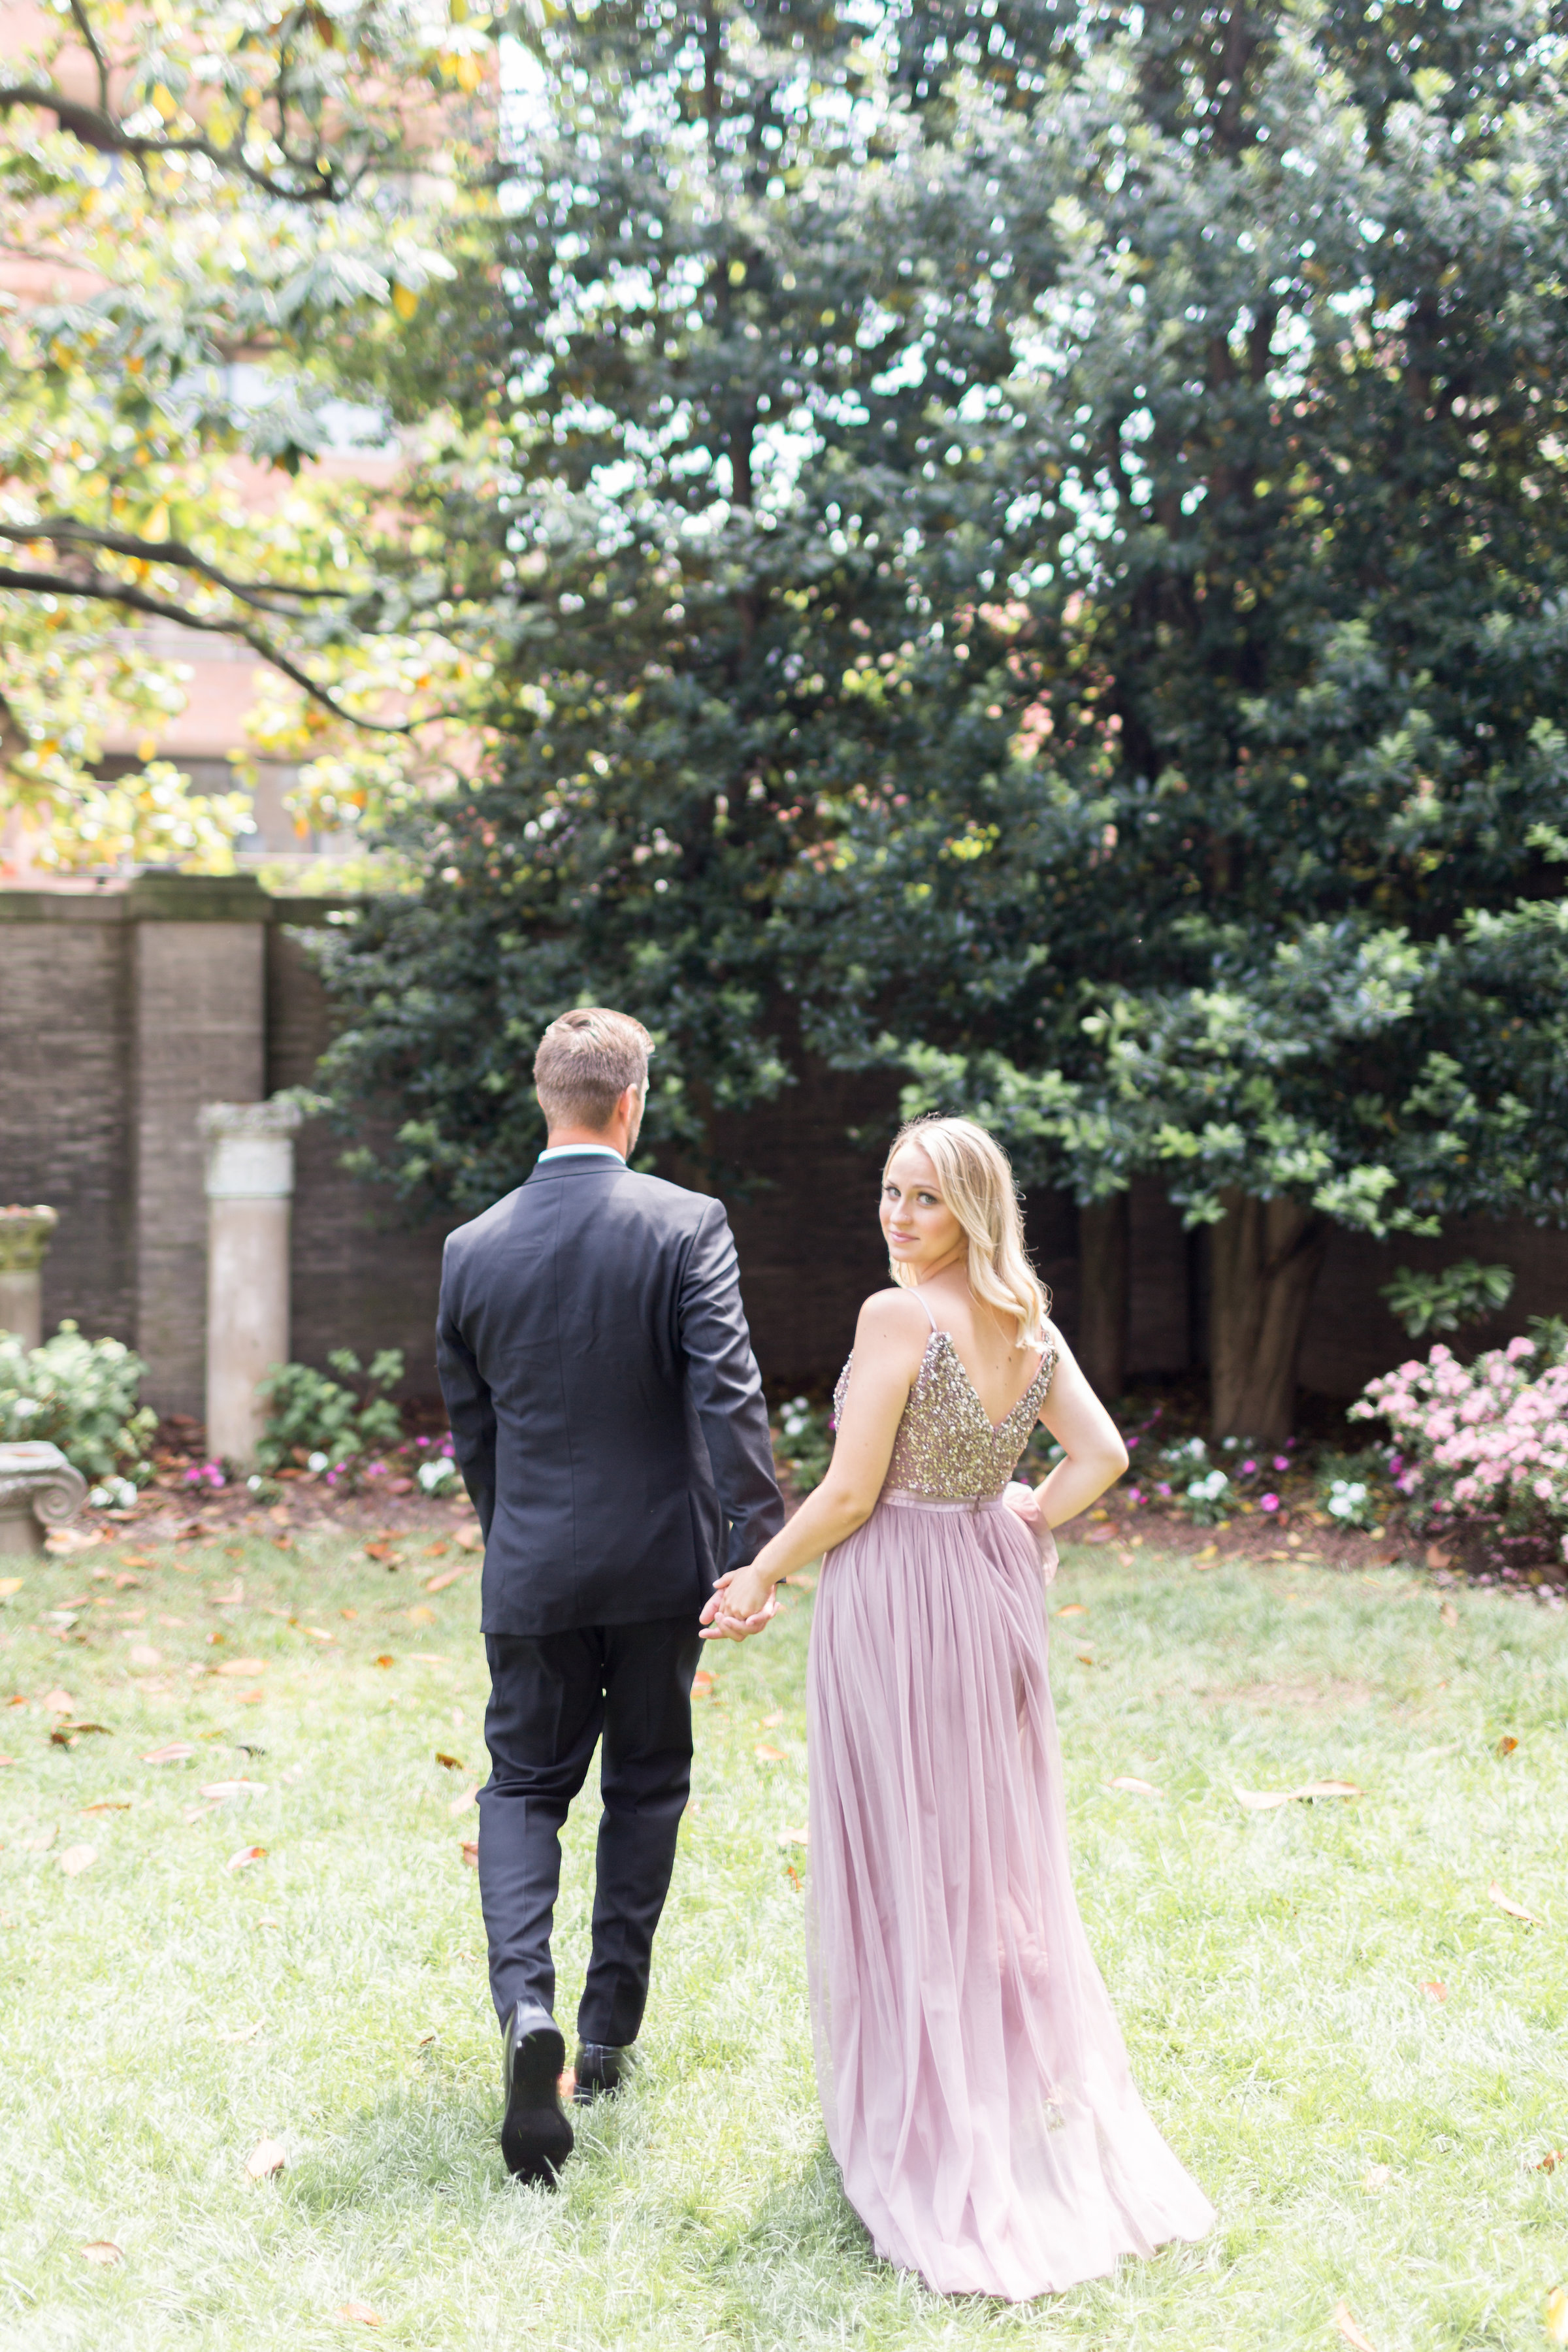 <h2>Sun dappled stroll</h2>Photo by Kir Tuben. Sincerely Pete Events, planner.